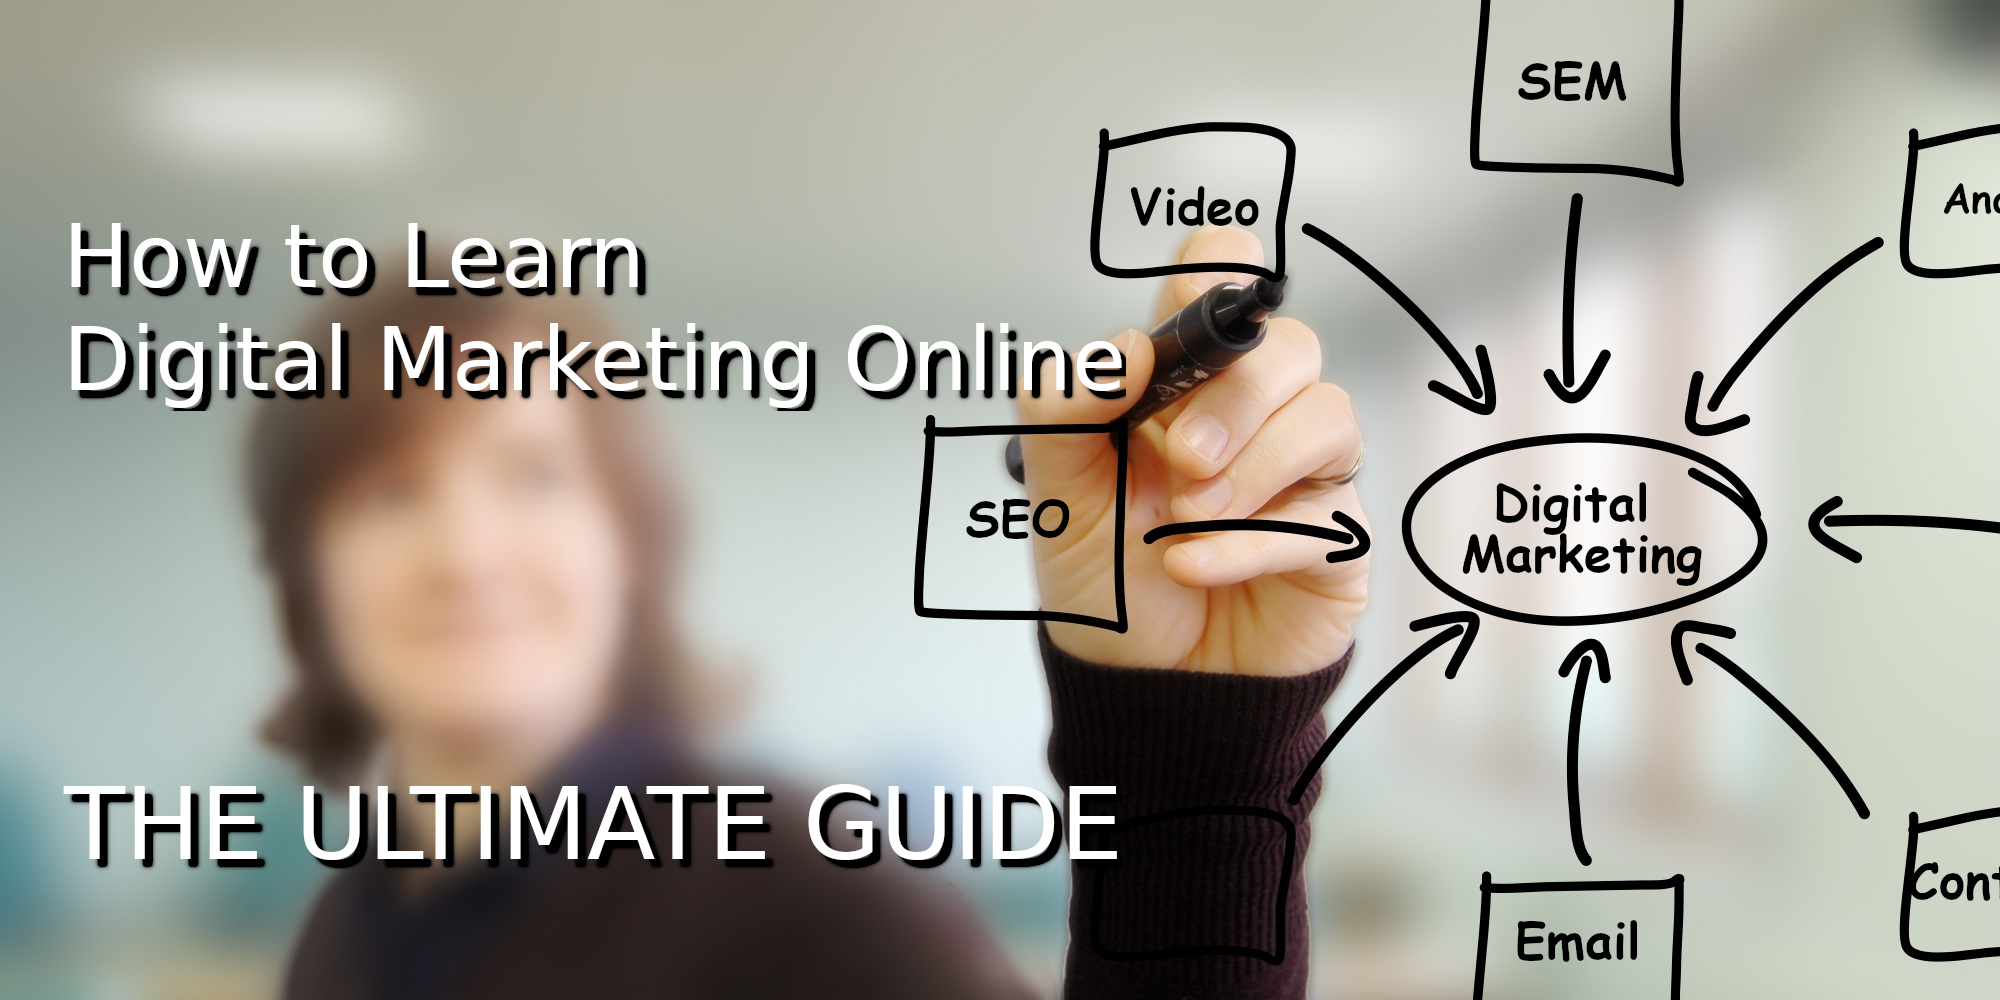 How To Learn Digital Marketing Online - The Ultimate Guide - featured image